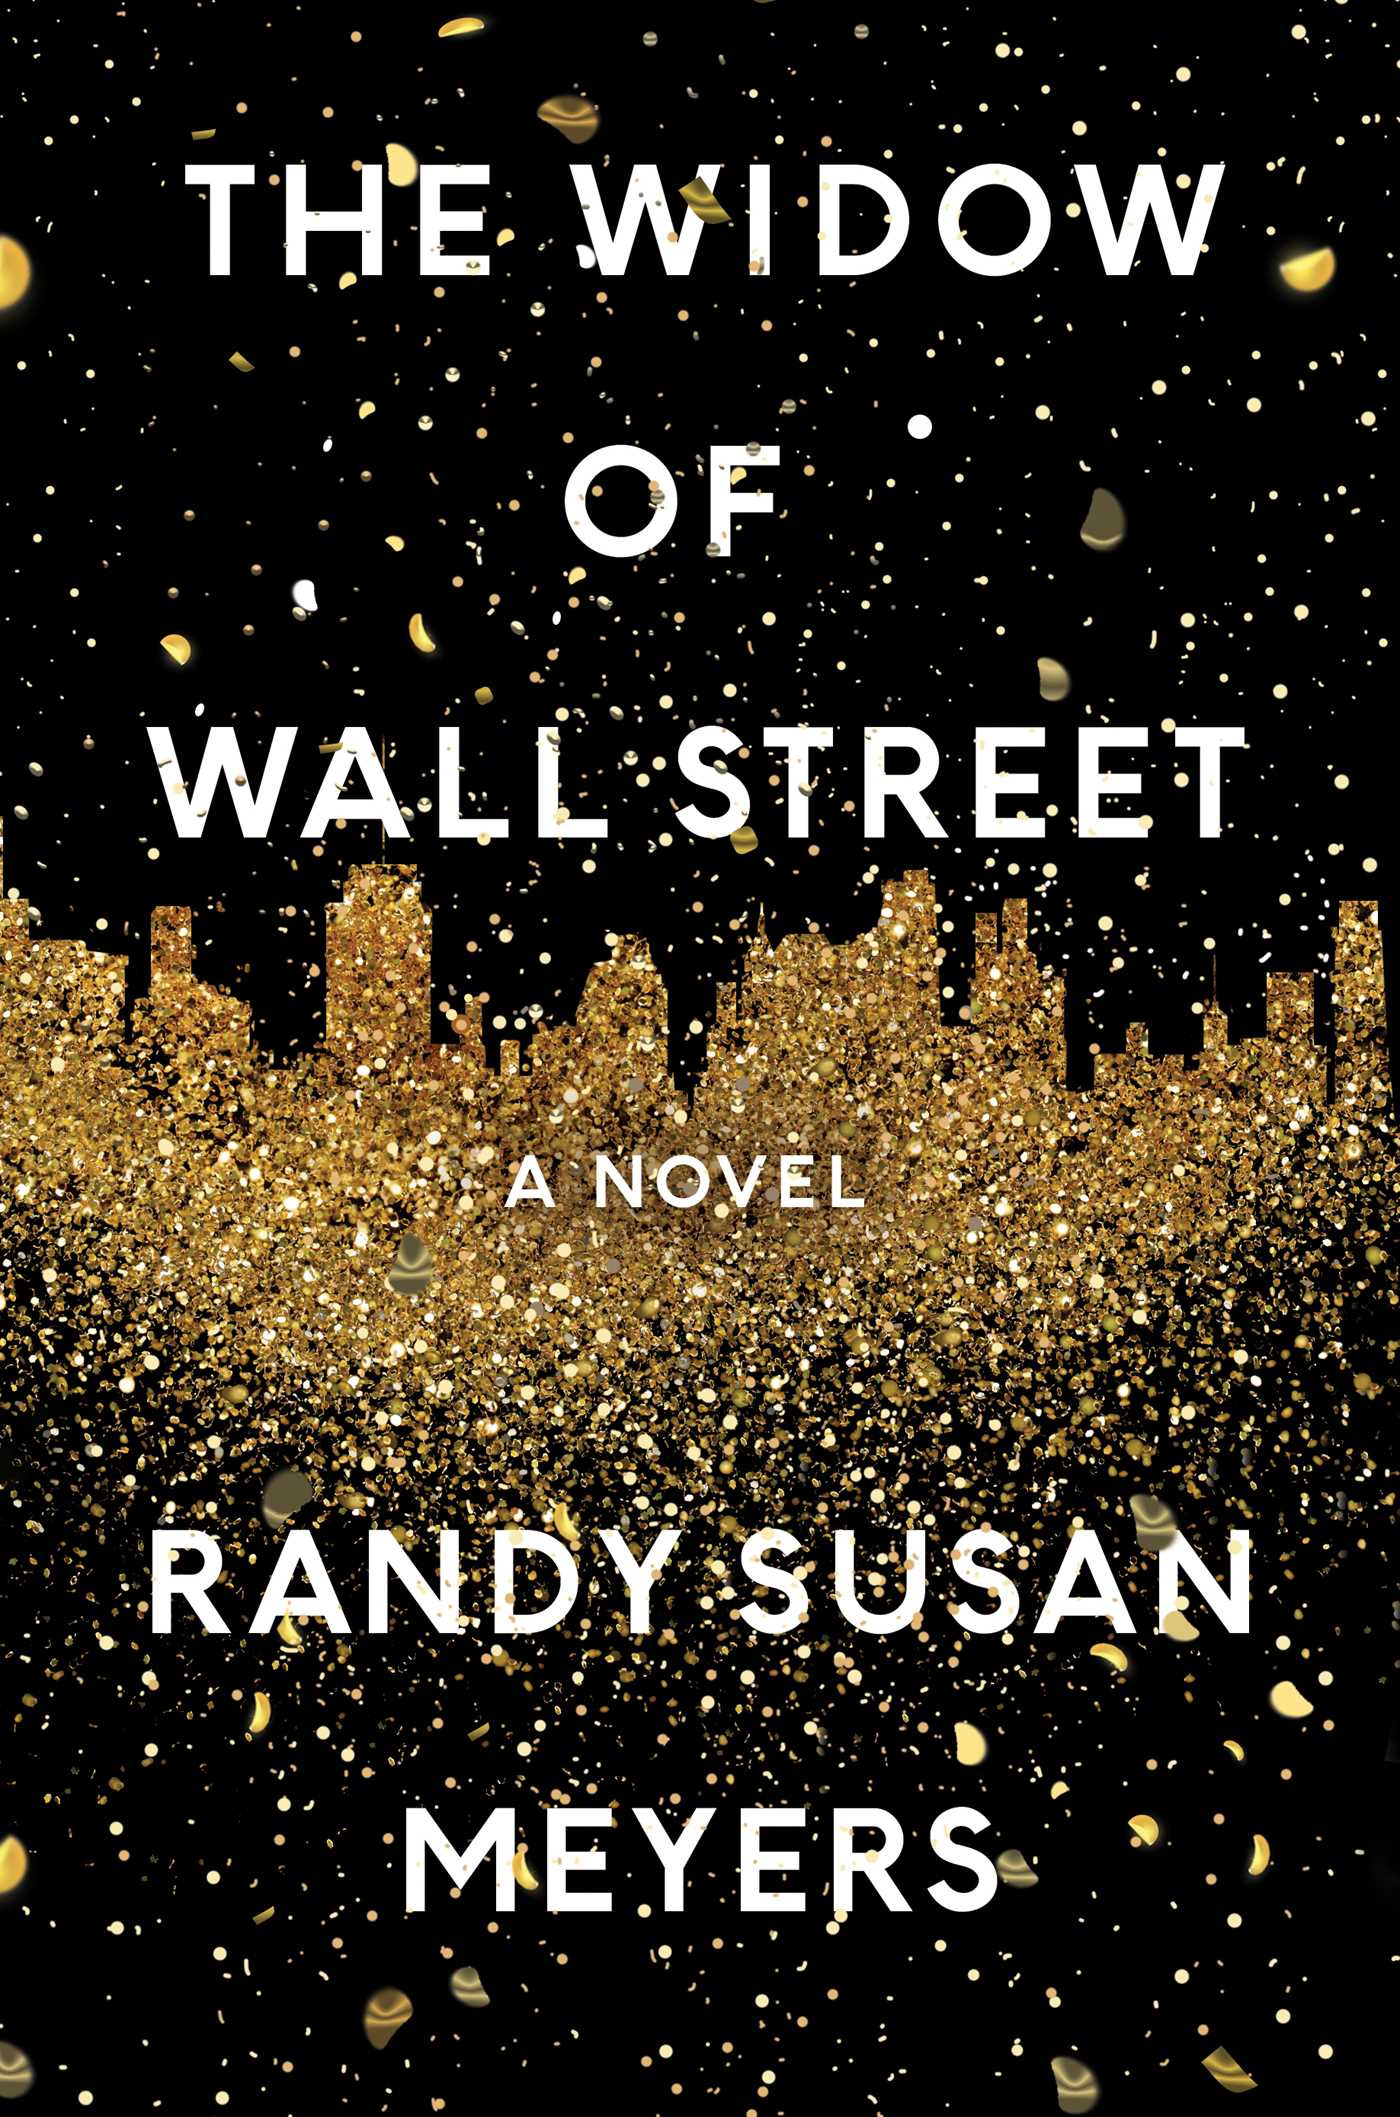 Randy Susan Meyers – The Widow Of Wall Street